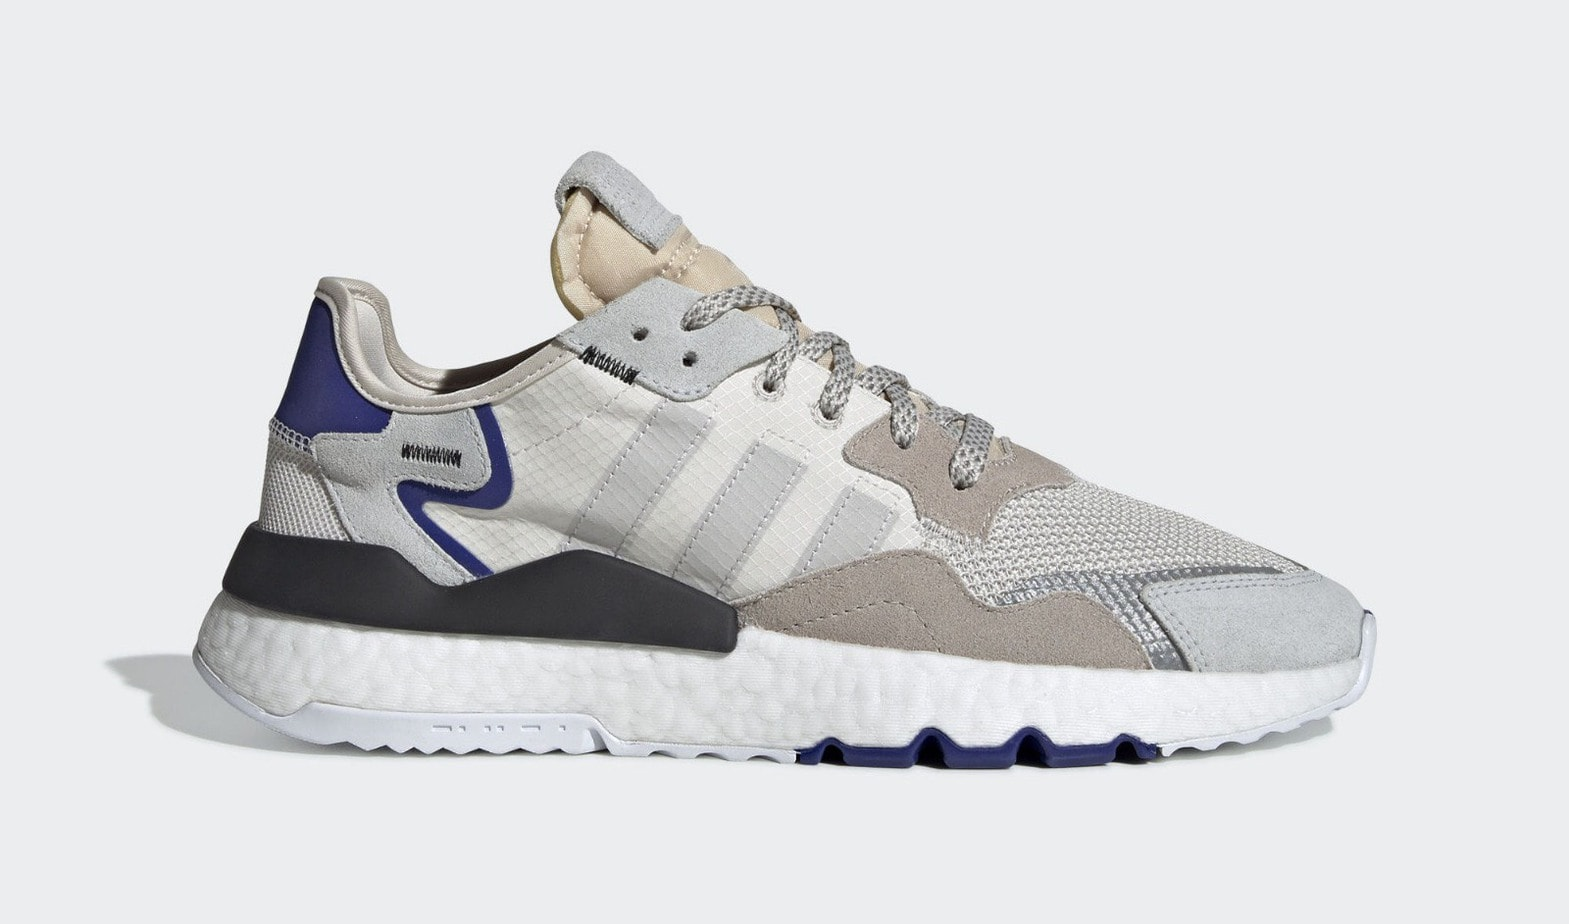 san francisco 0ad41 0562c adidas Nite Jogger Release Date April 11th, 2019. Price 130. Color  Cloud WhiteCrystal WhiteCrystal White Style Code BD7676